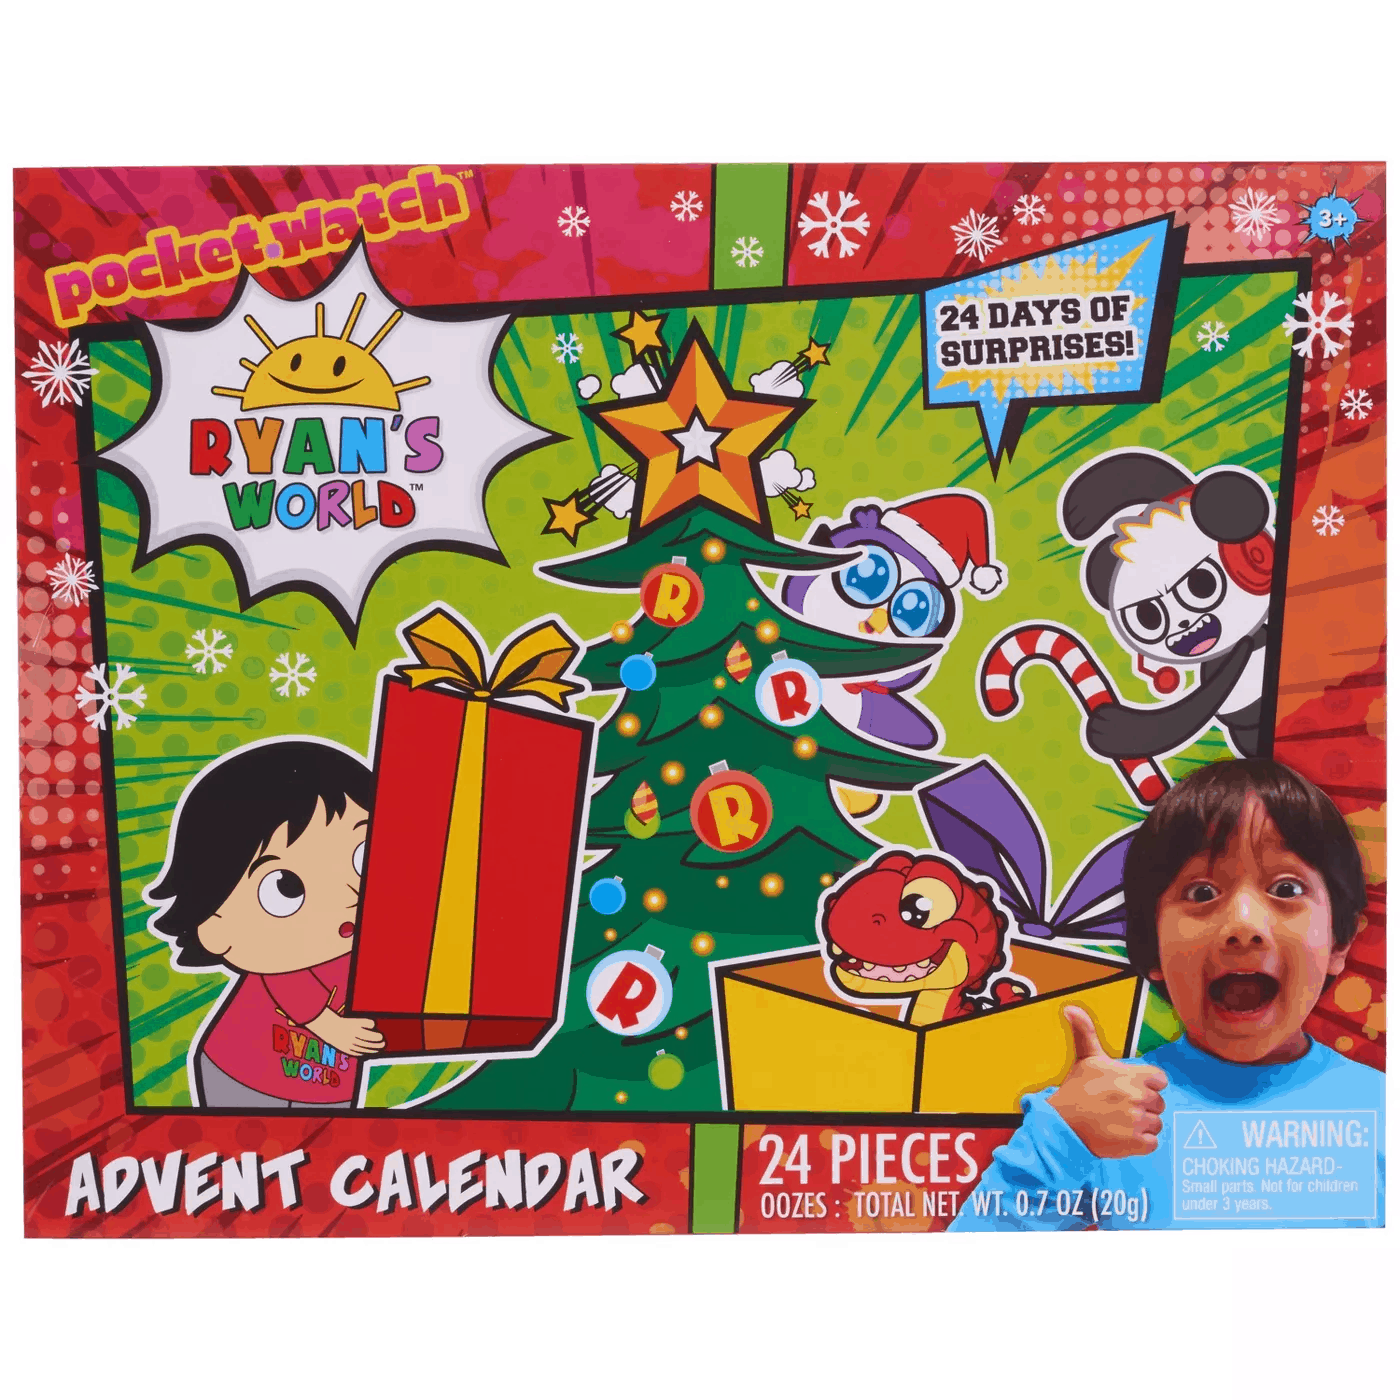 2019 Ryan's World Advent Calendar Available Now!